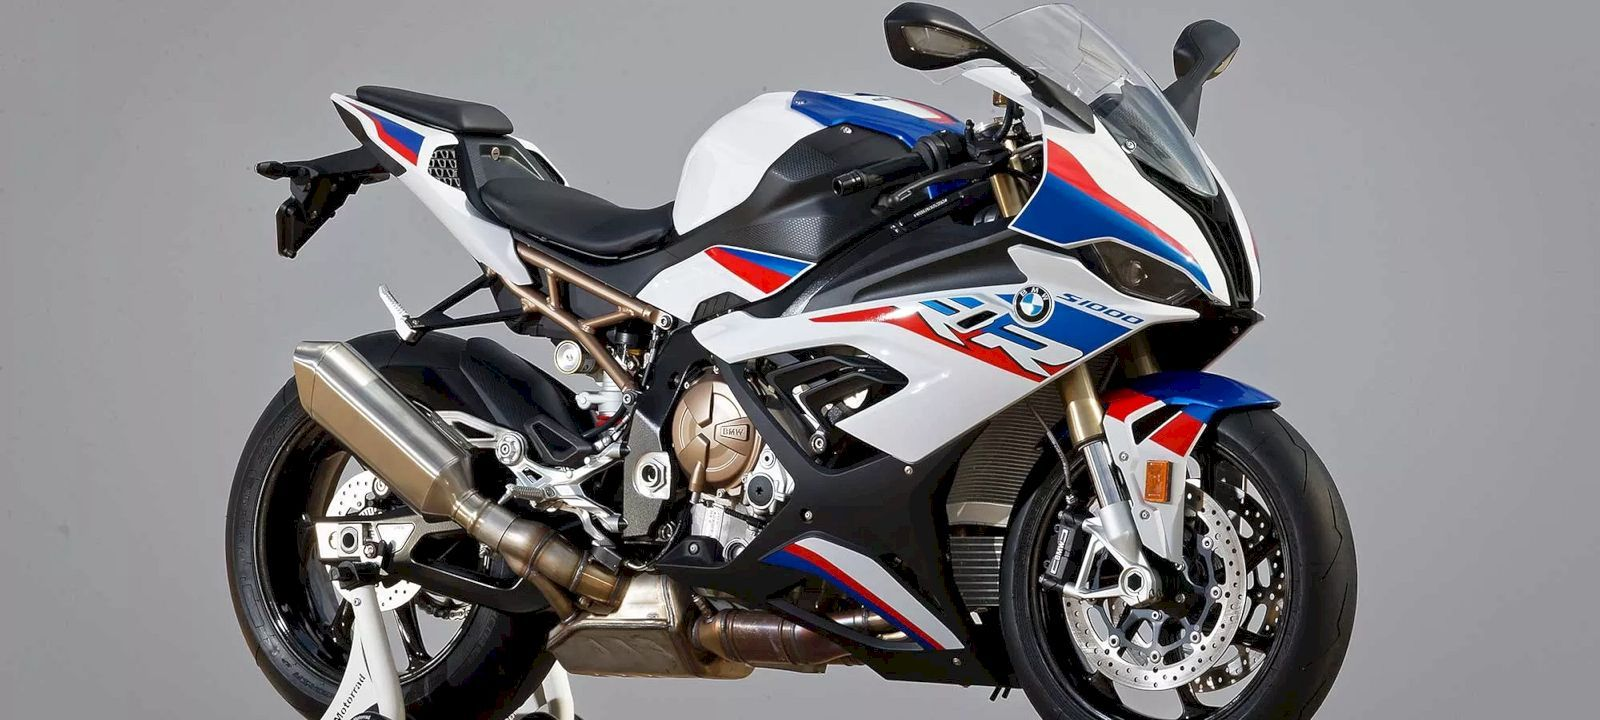 2019 Bmw S 1000 Rr An Icon Among Superbikes With Images Bmw